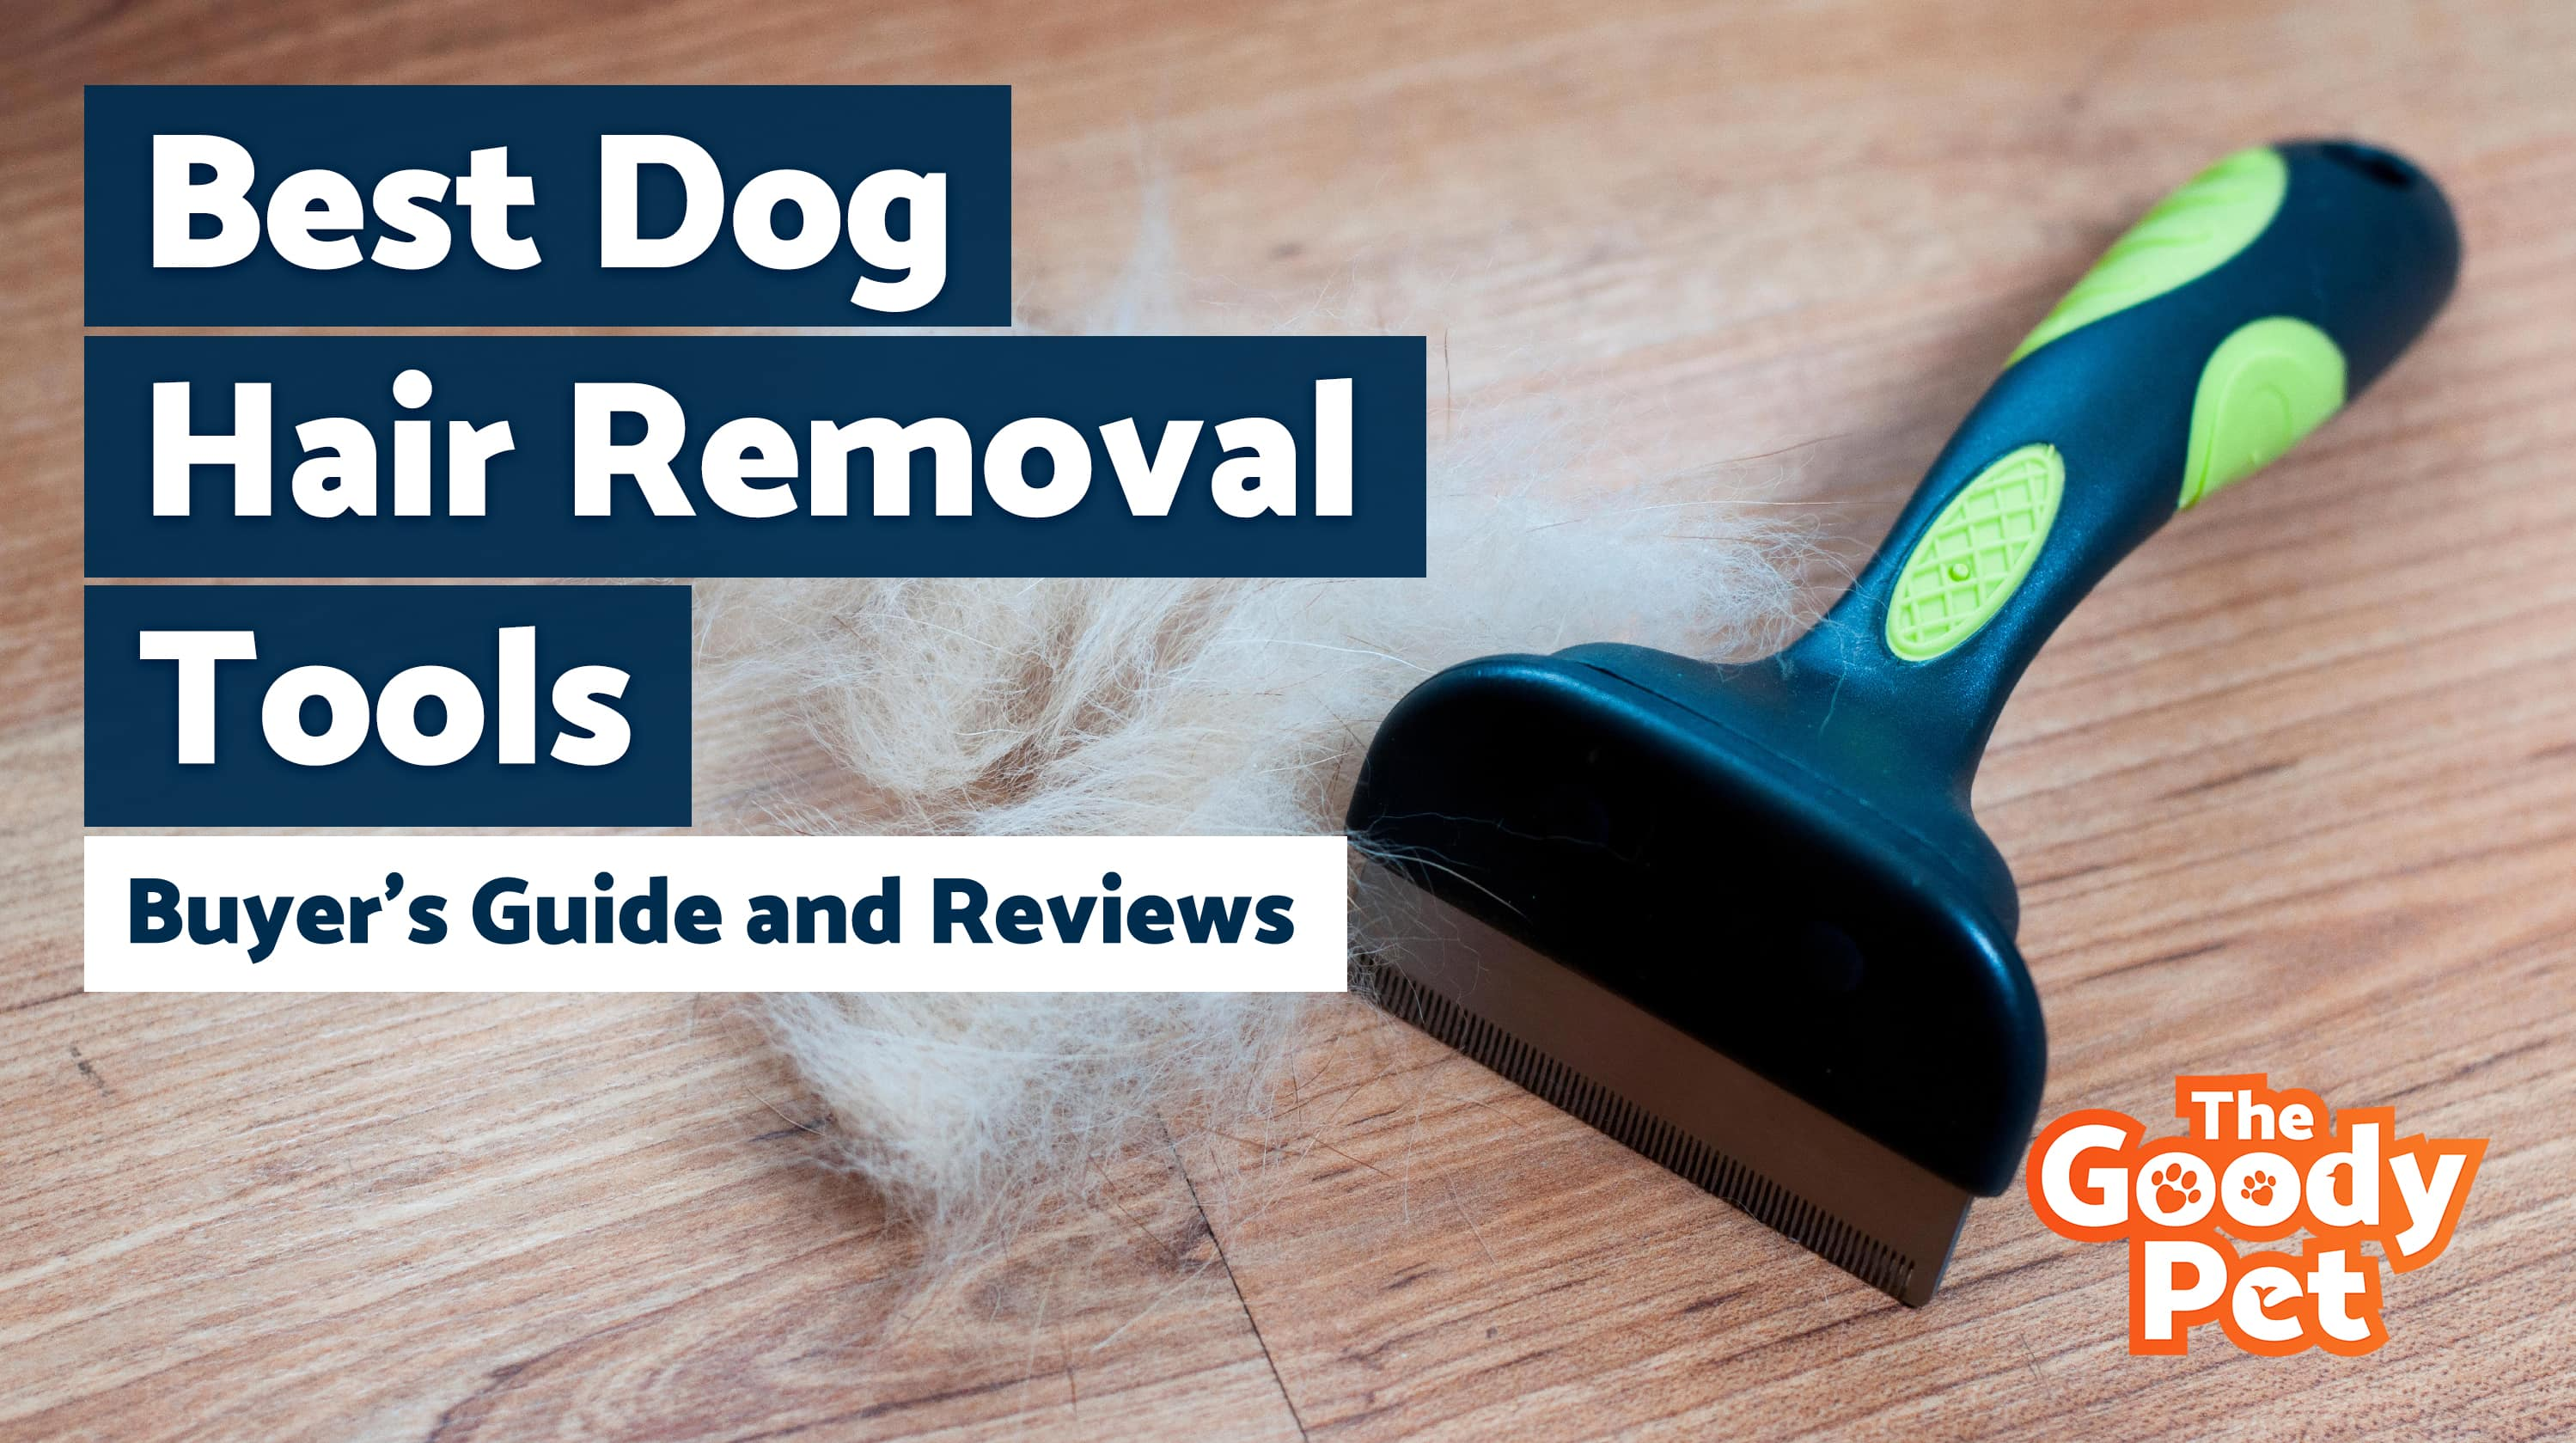 Best Dog Hair Removal Tools For Pet Hair & Fur – Our 2019 Reviews & Top Picks